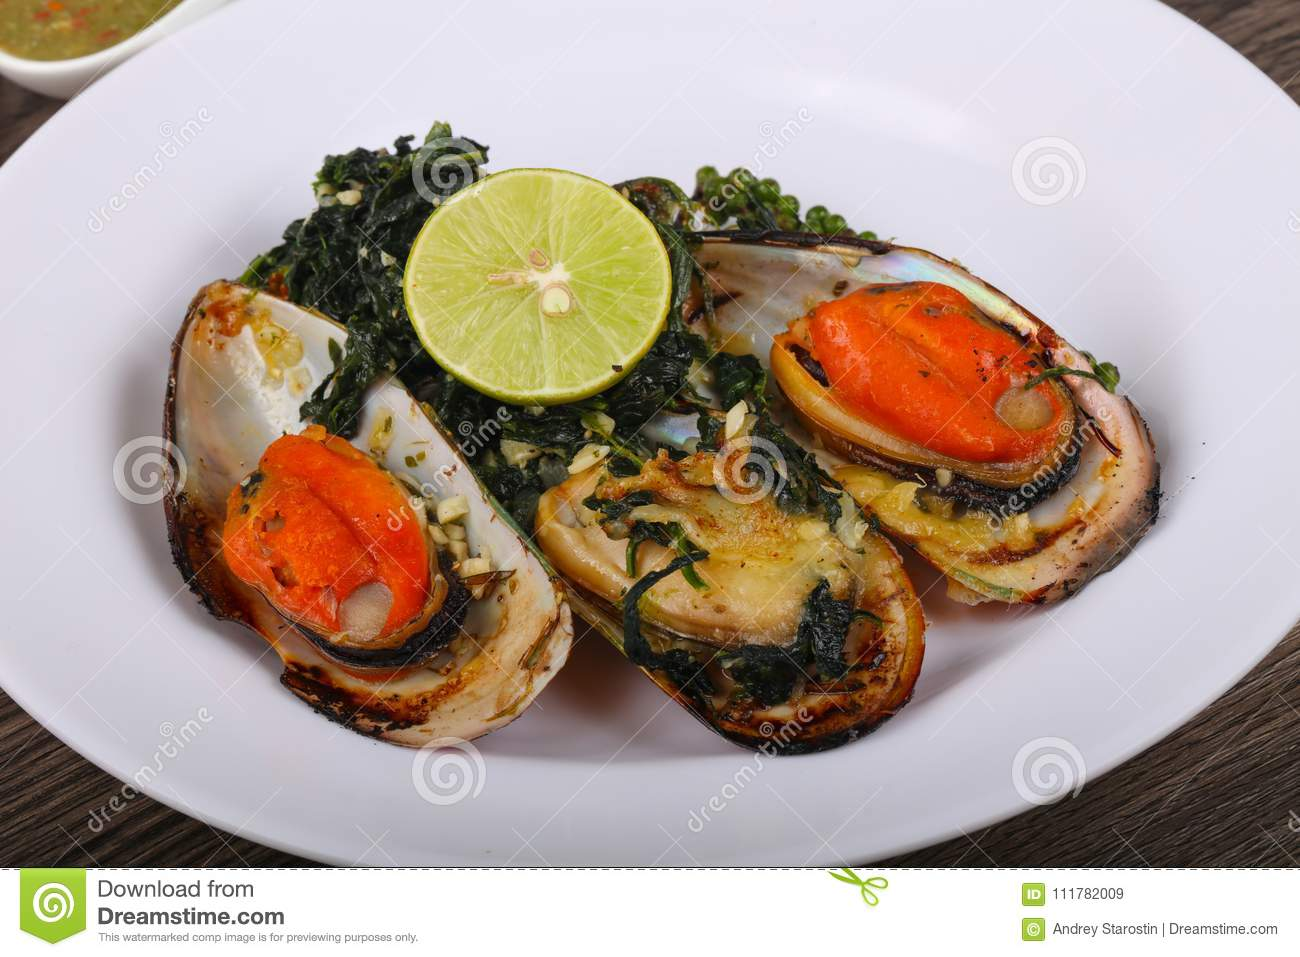 Baked mussels with spinach